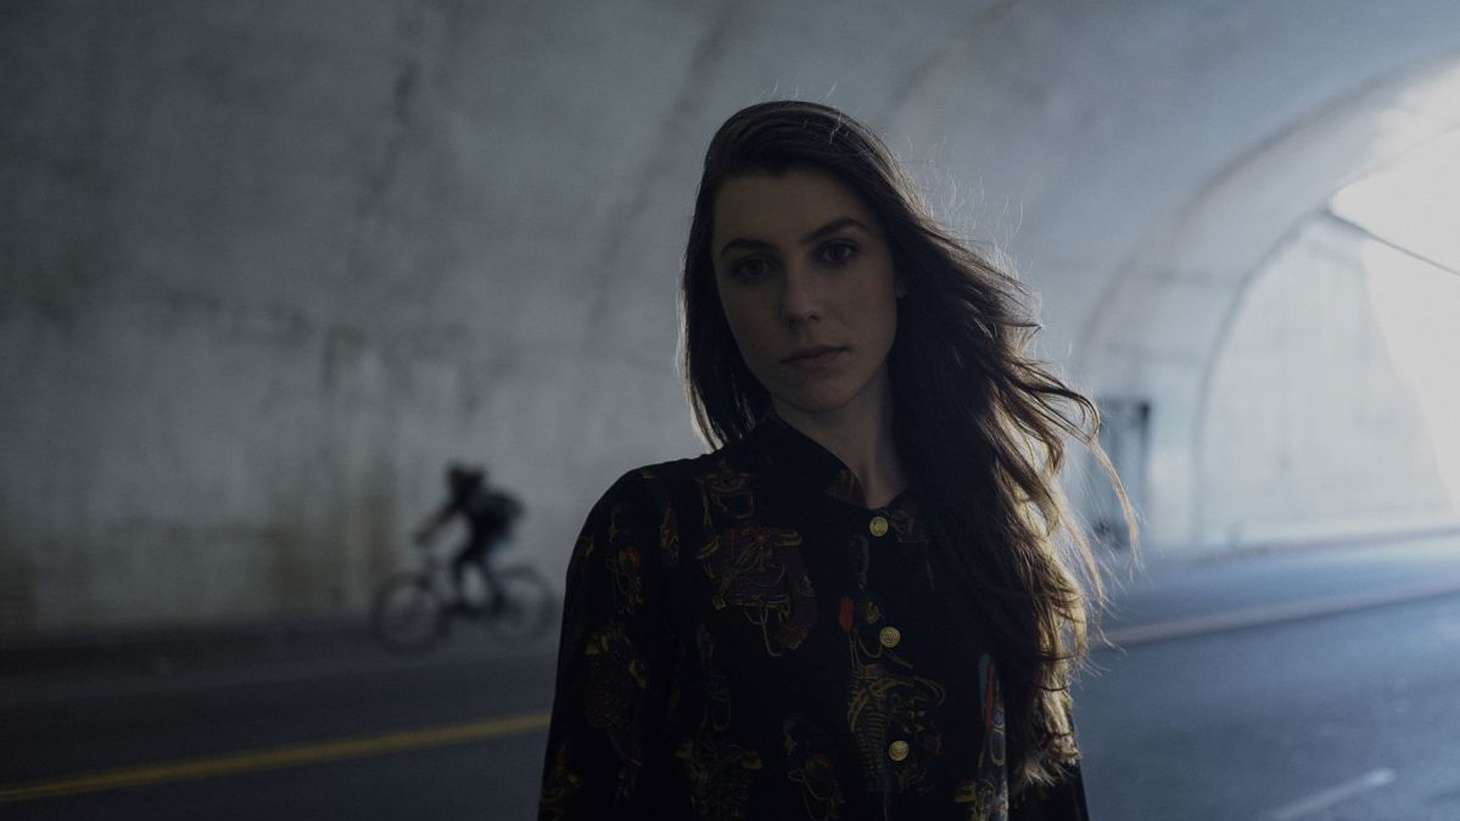 Julia Holter is a Los Angeles-based singer whose experimental pop music has made her a critics' favorite.